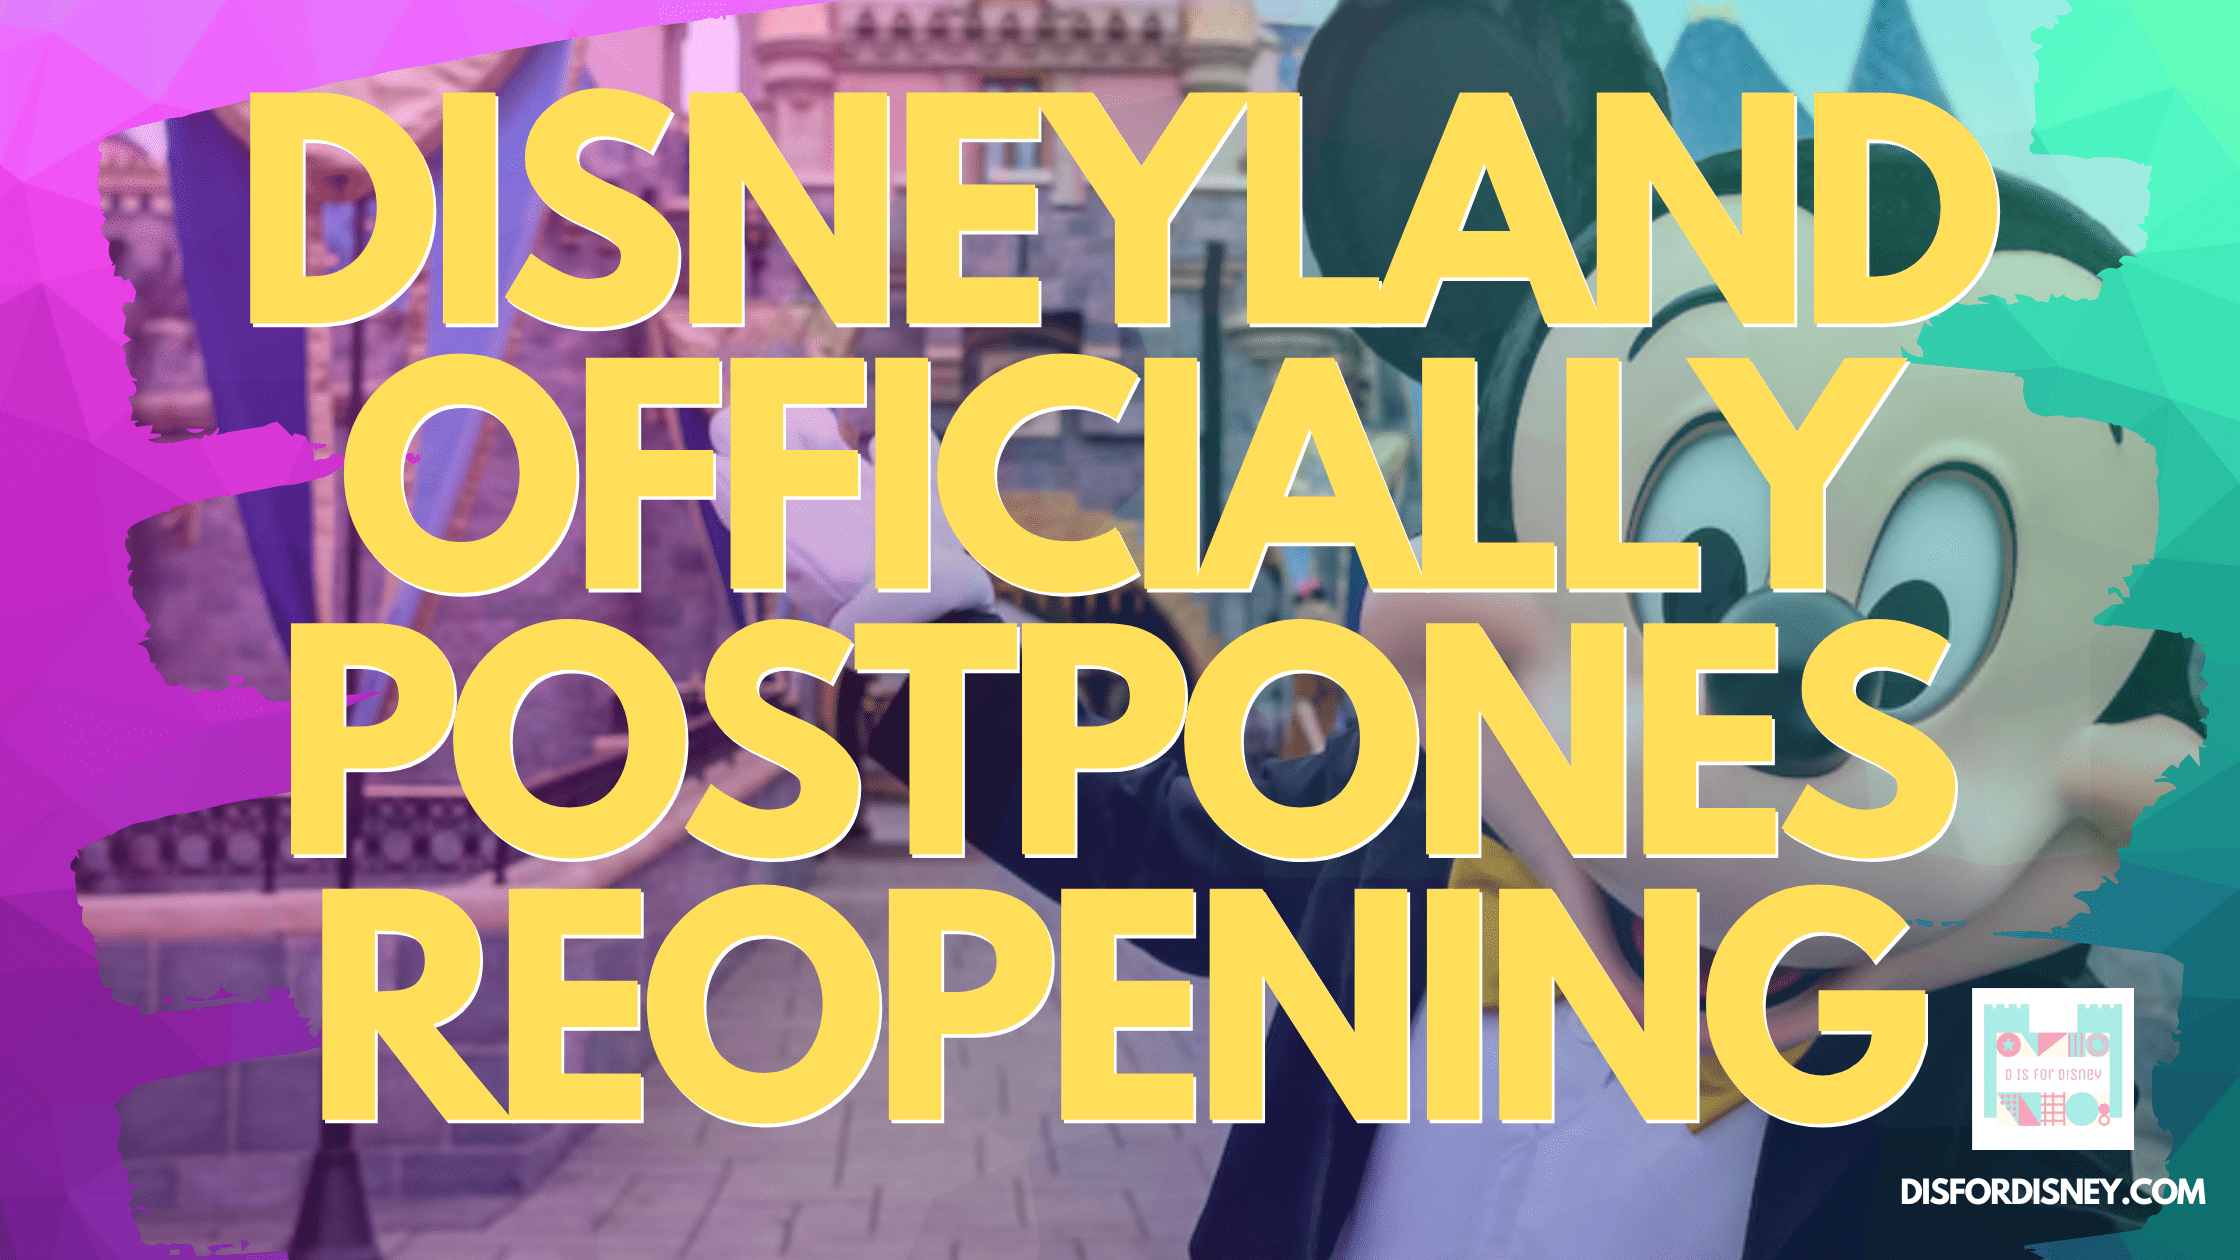 Disneyland-Officially-Postpones-Reopening